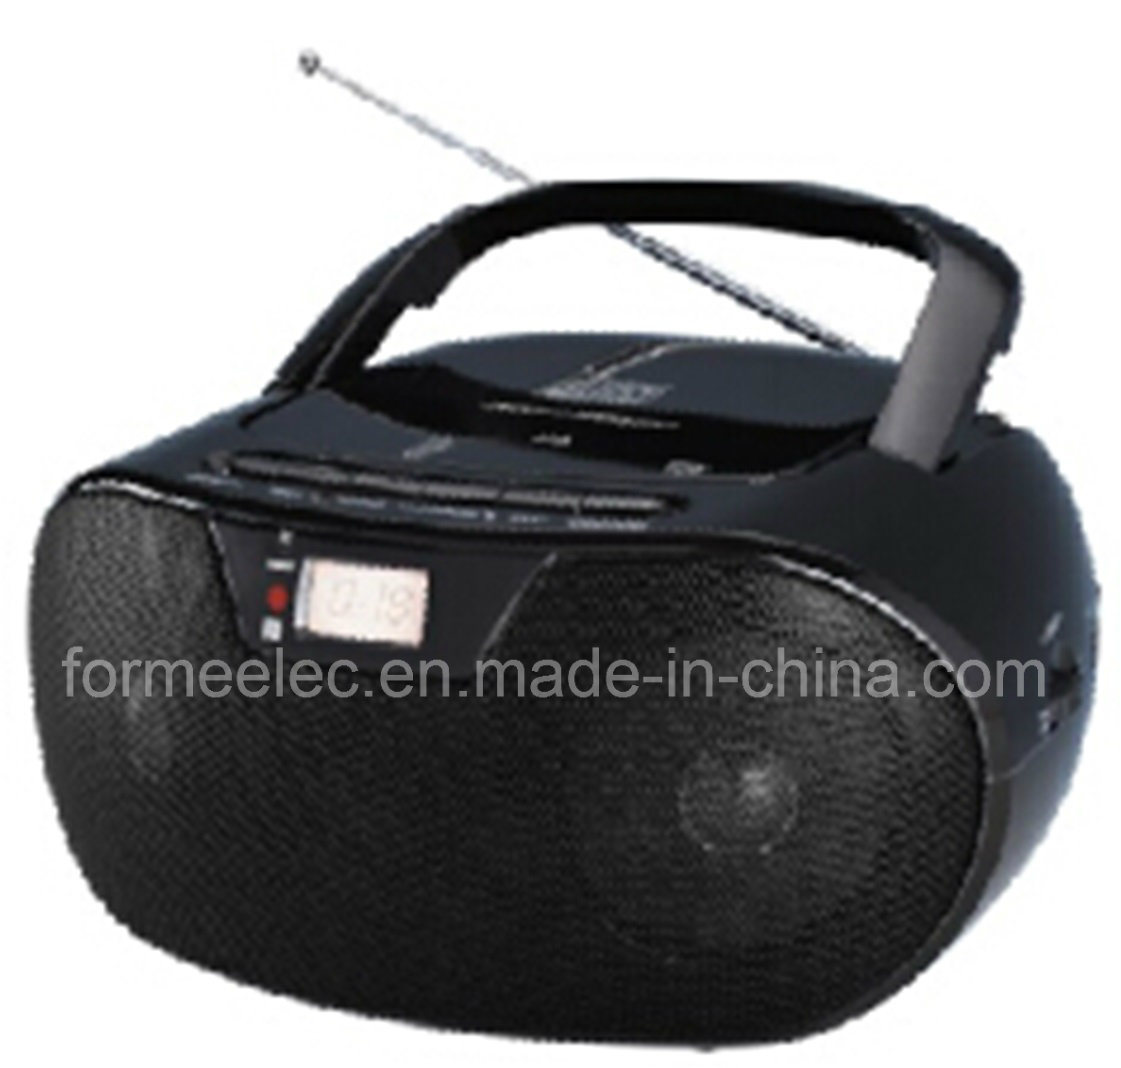 Portable MP3 CD Boombox with USB SD FM